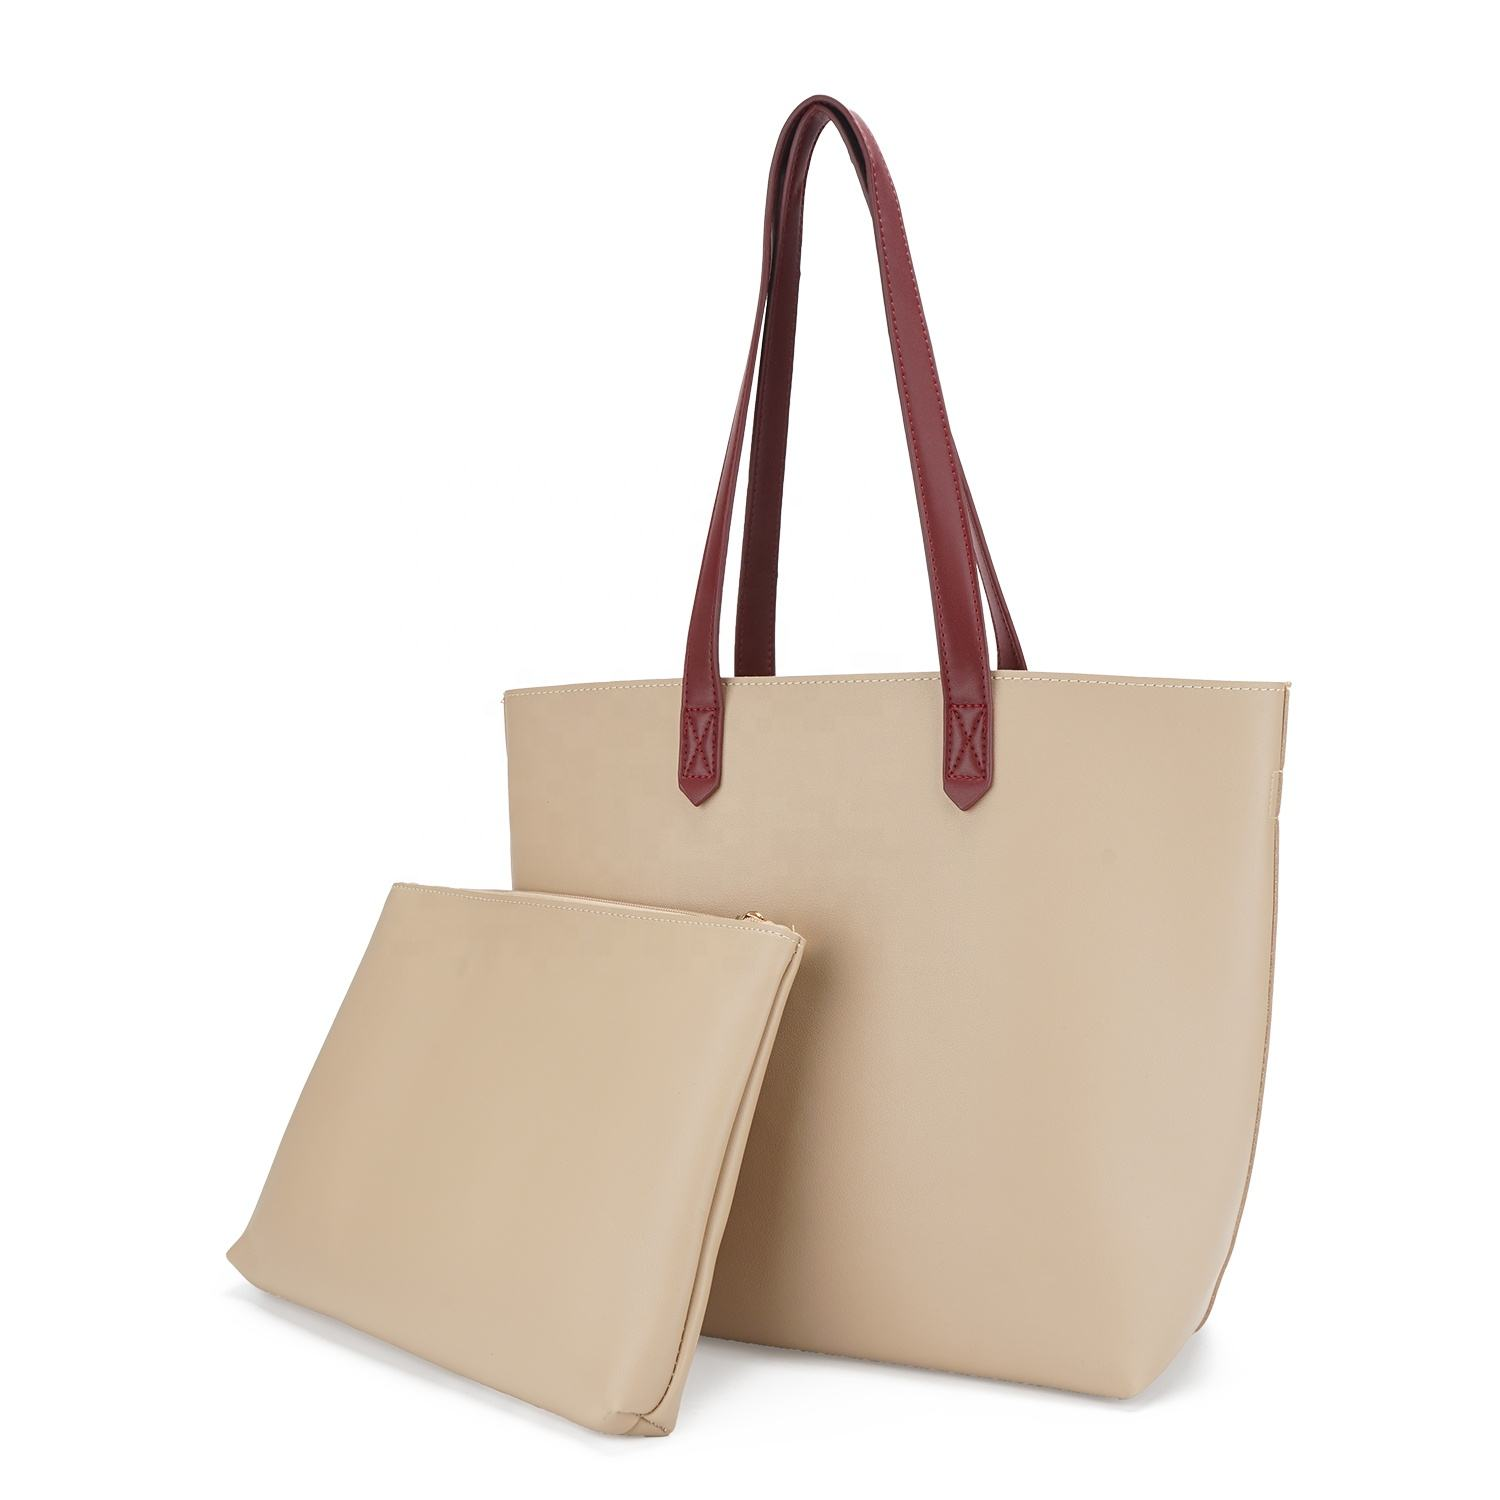 Latest trendy hand bags practical wild handbags large tote bag for women